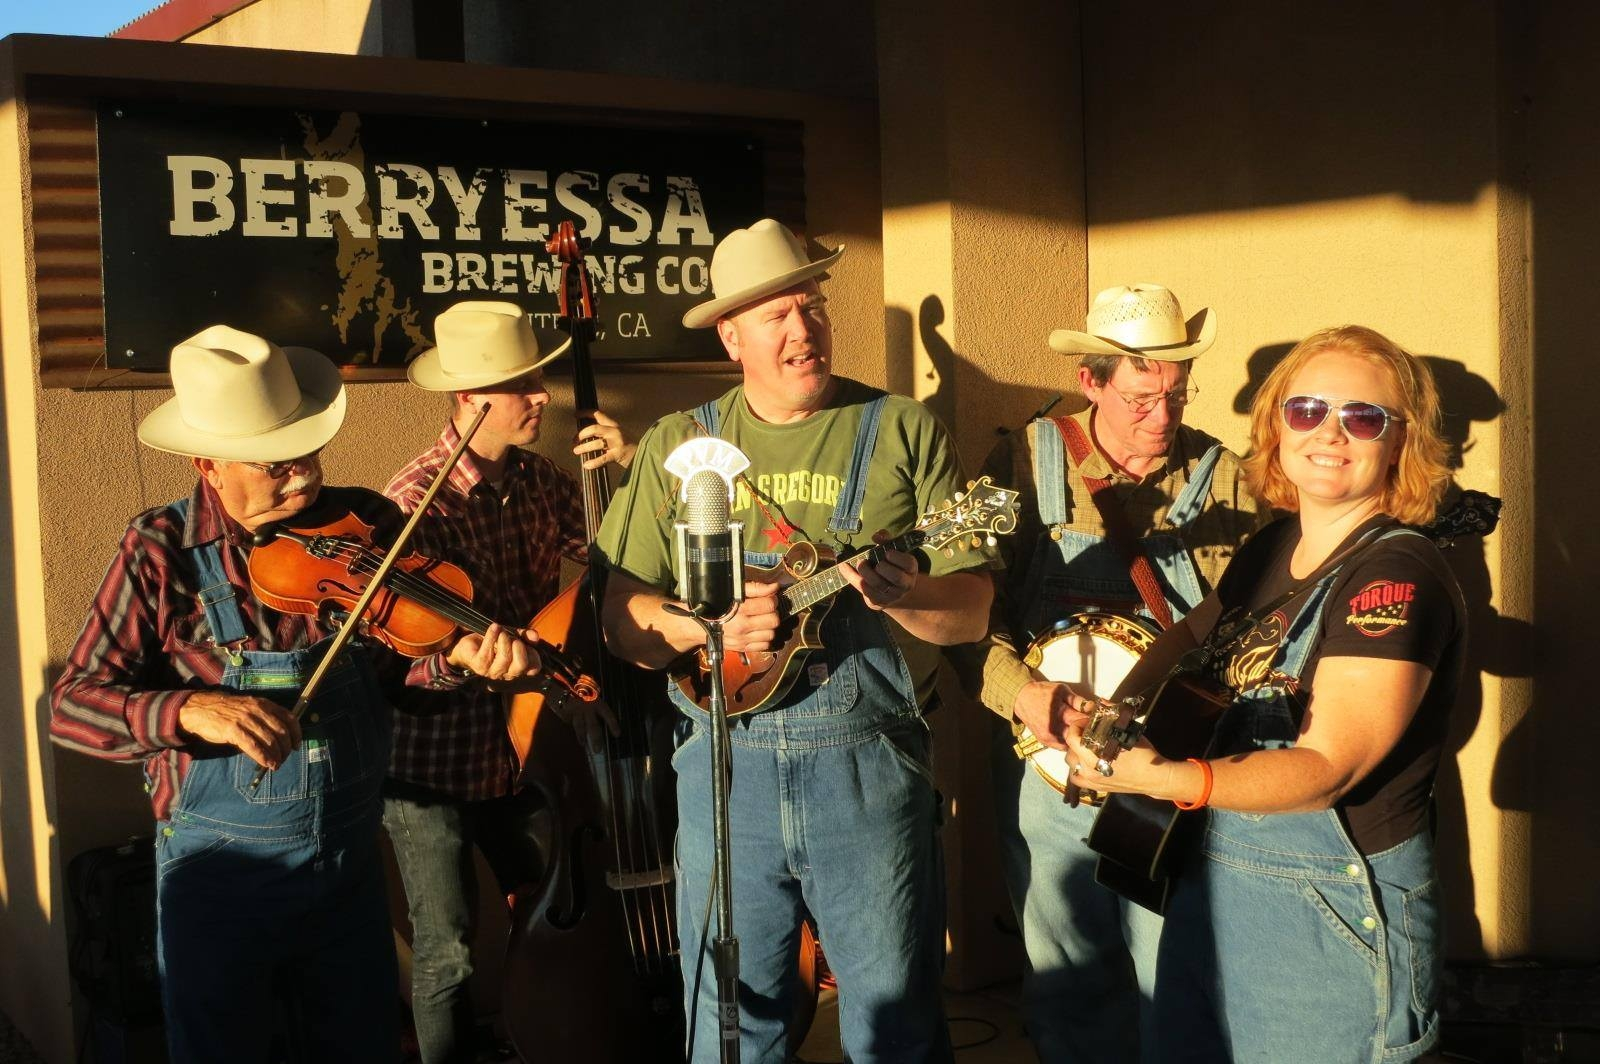 Pleasant Valley Boys performing in direct sunlight at Berryessa Brewing Co.